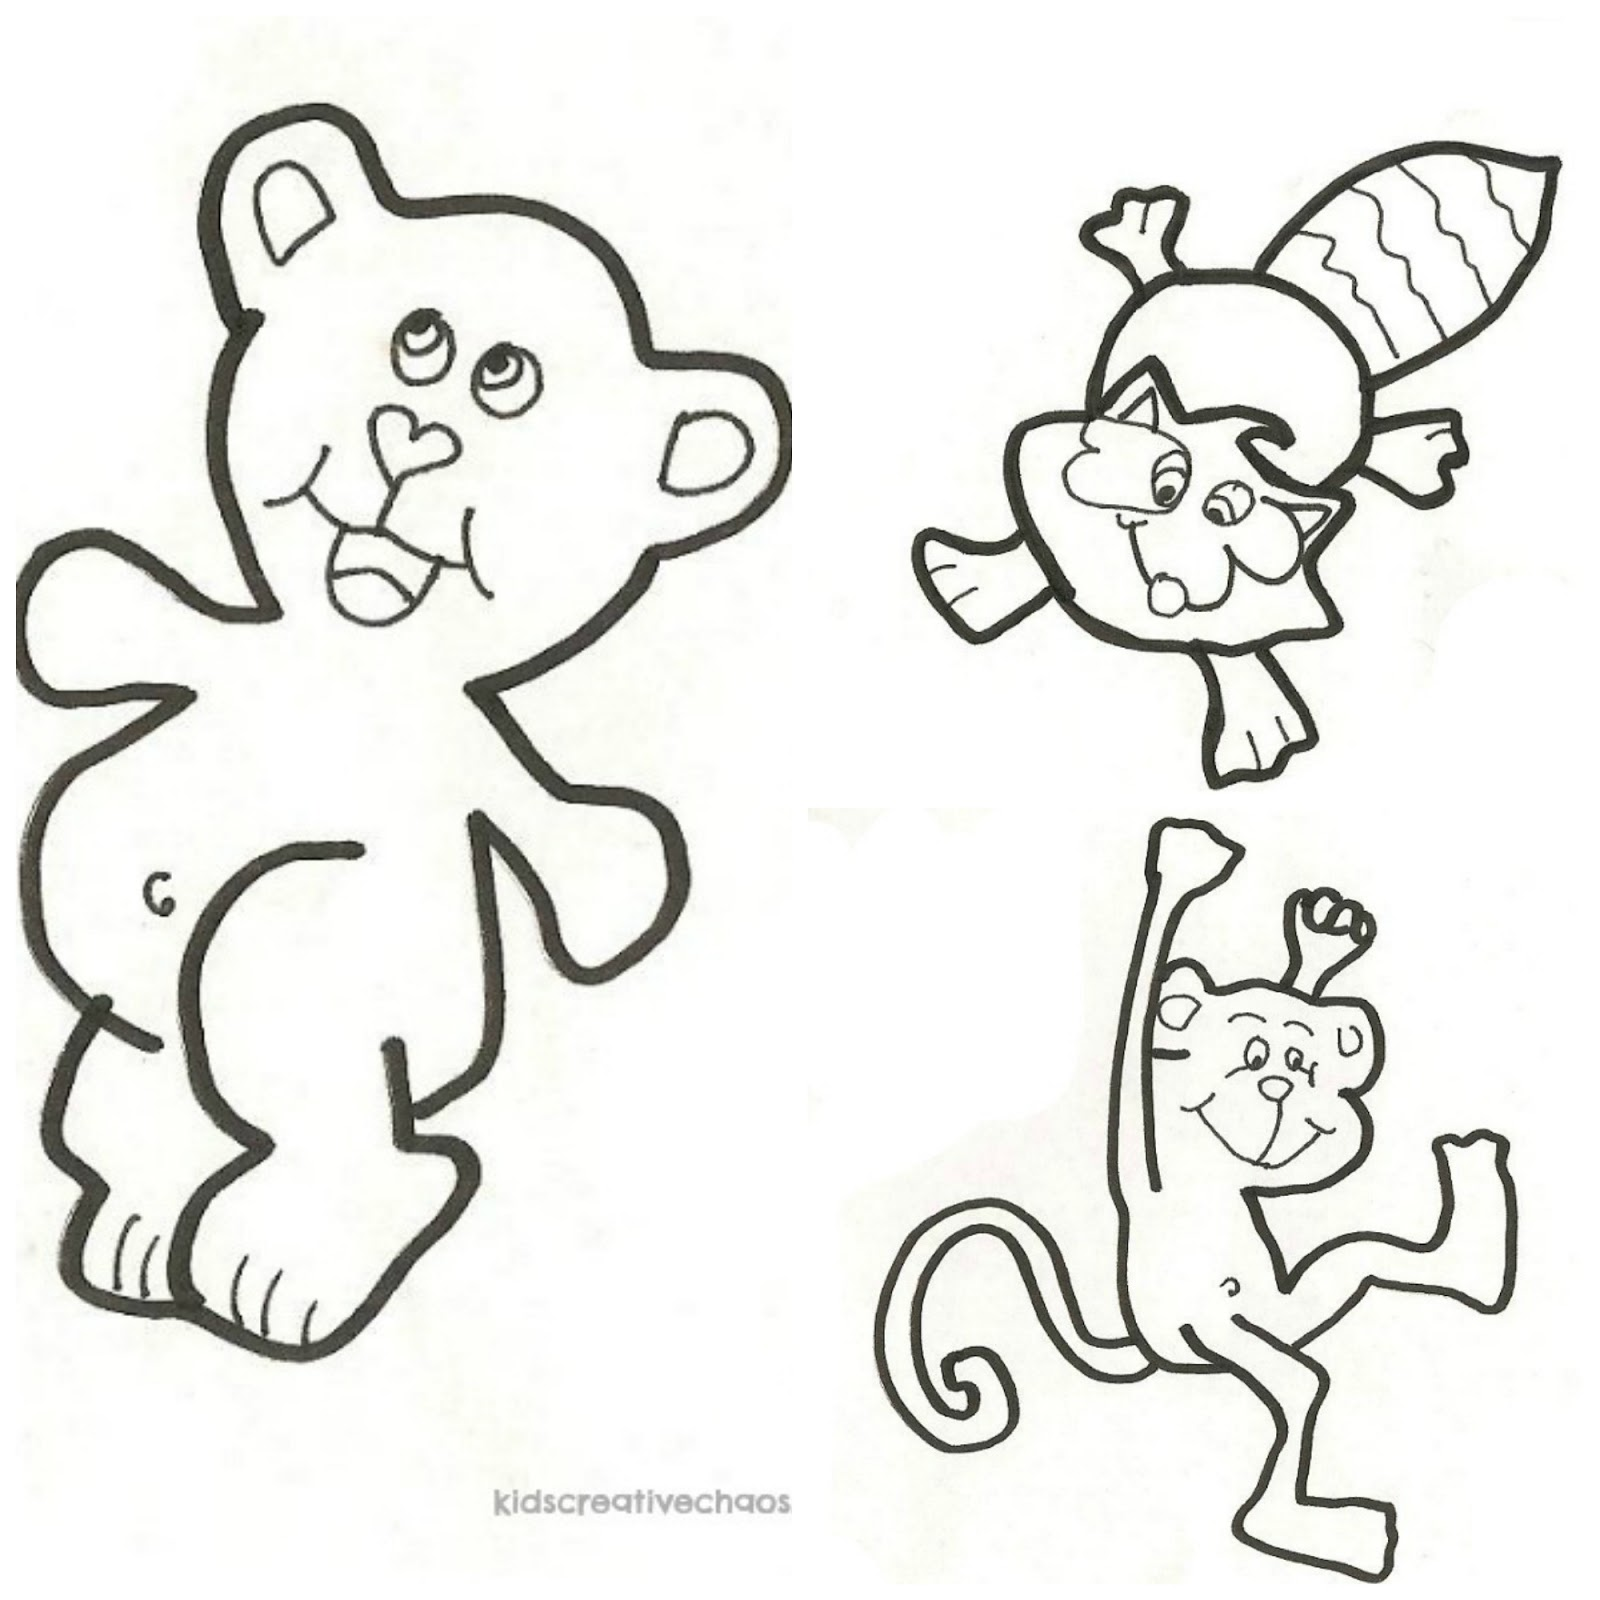 trace cute animals to learn to draw or use as free printable